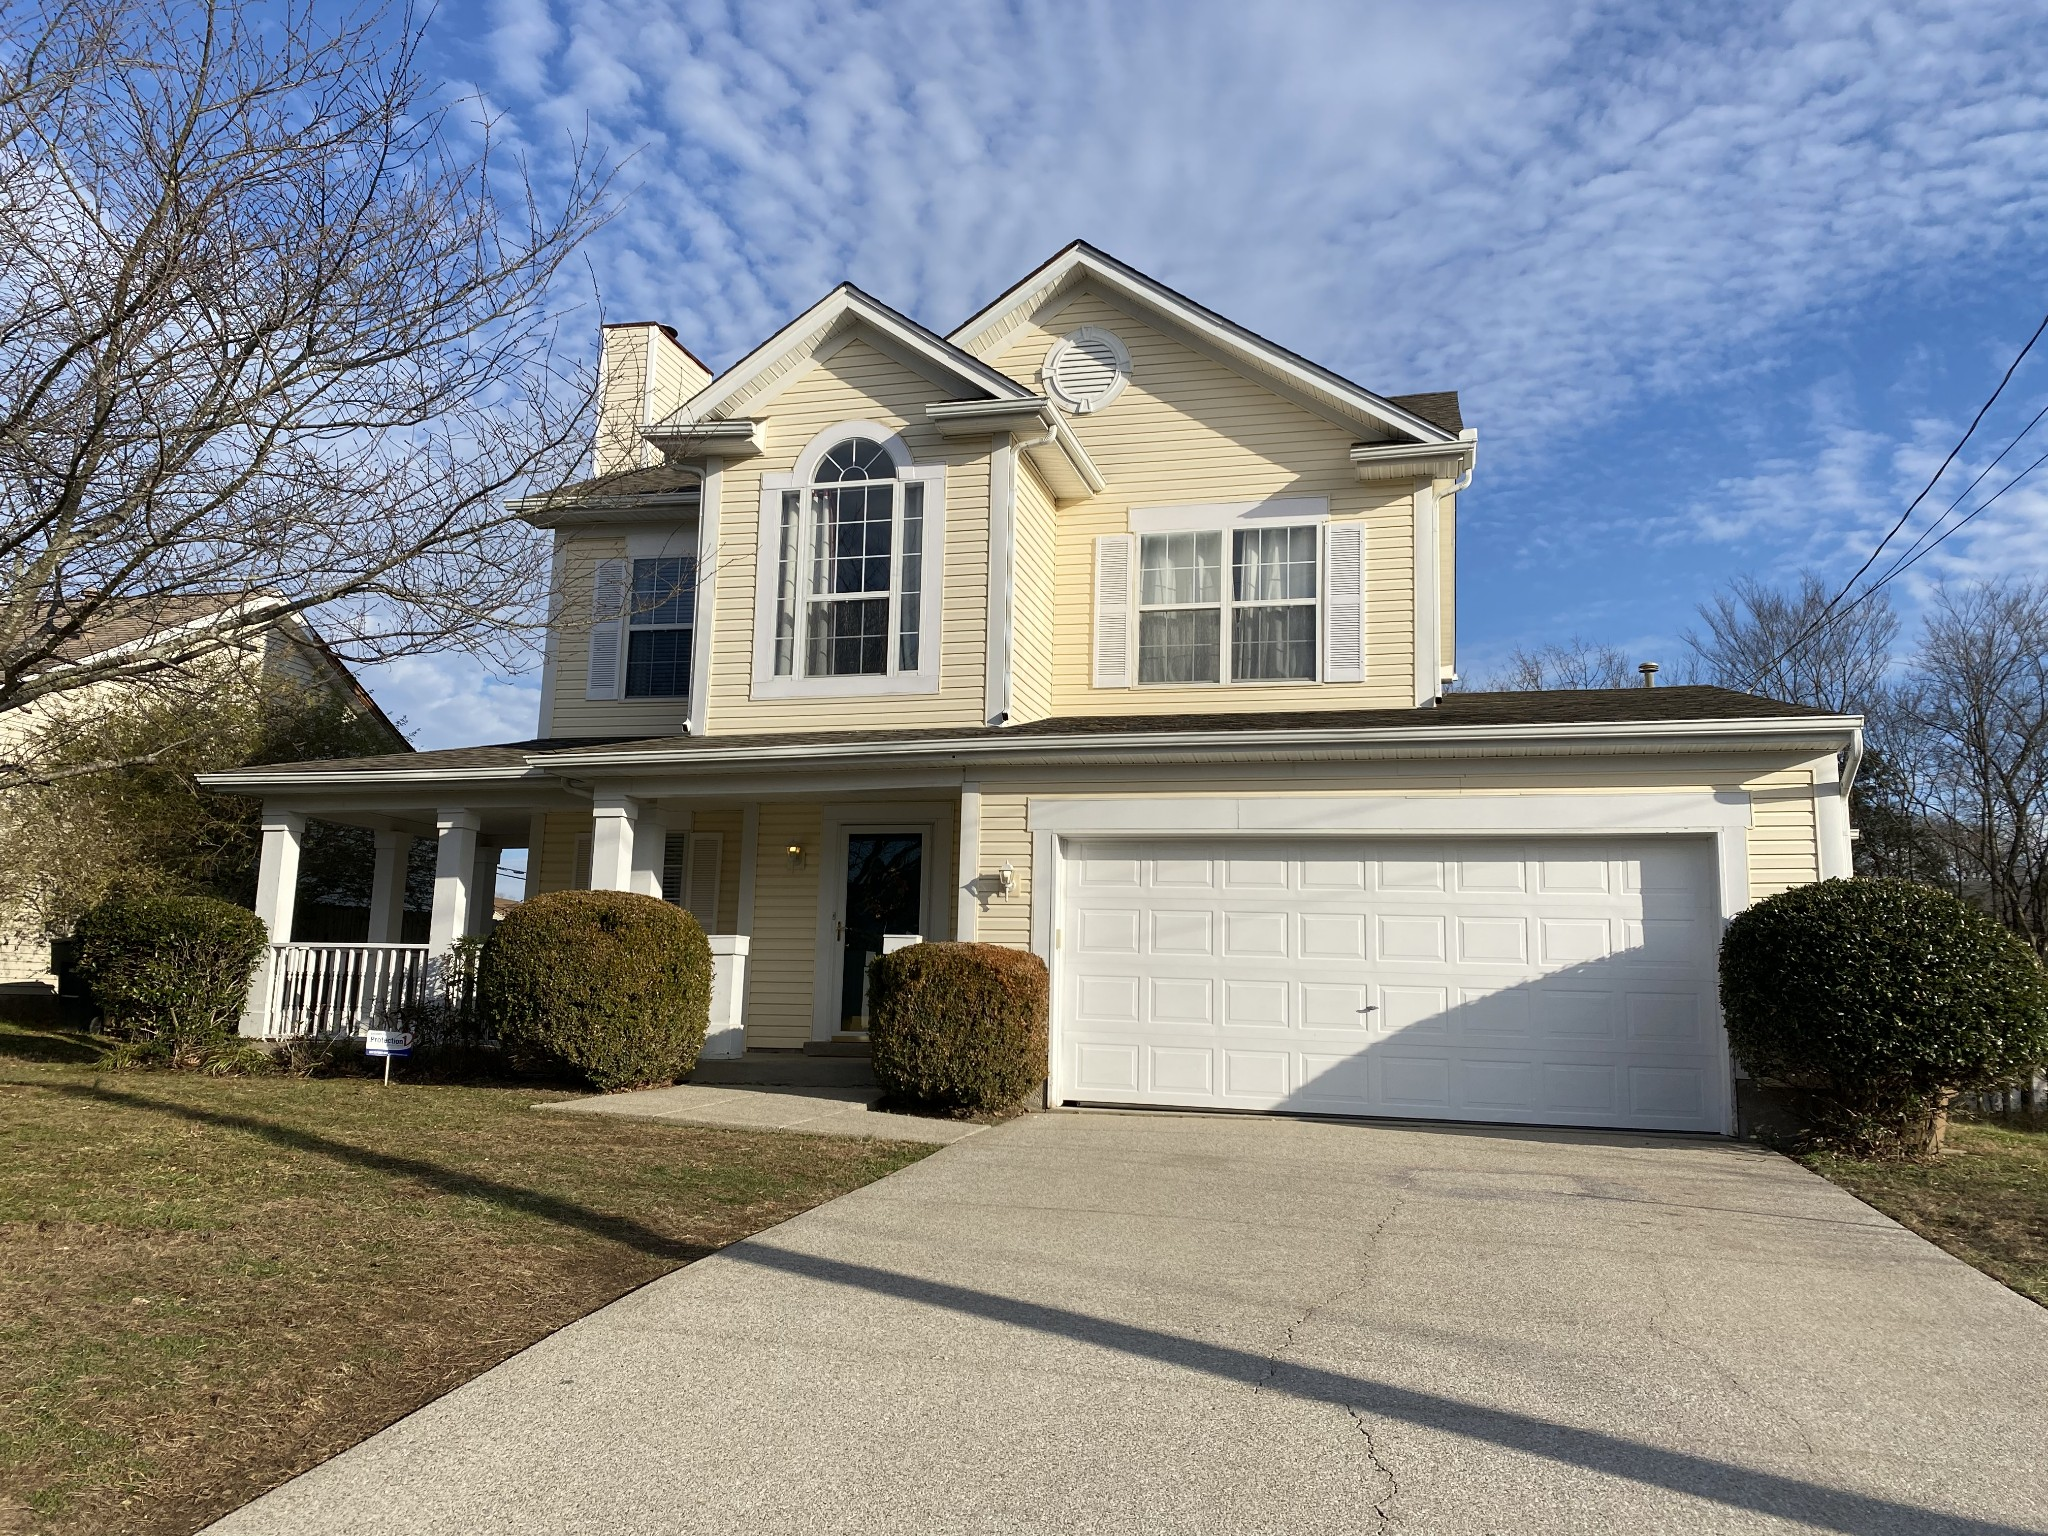 405 Asheford Ct Property Photo - Antioch, TN real estate listing